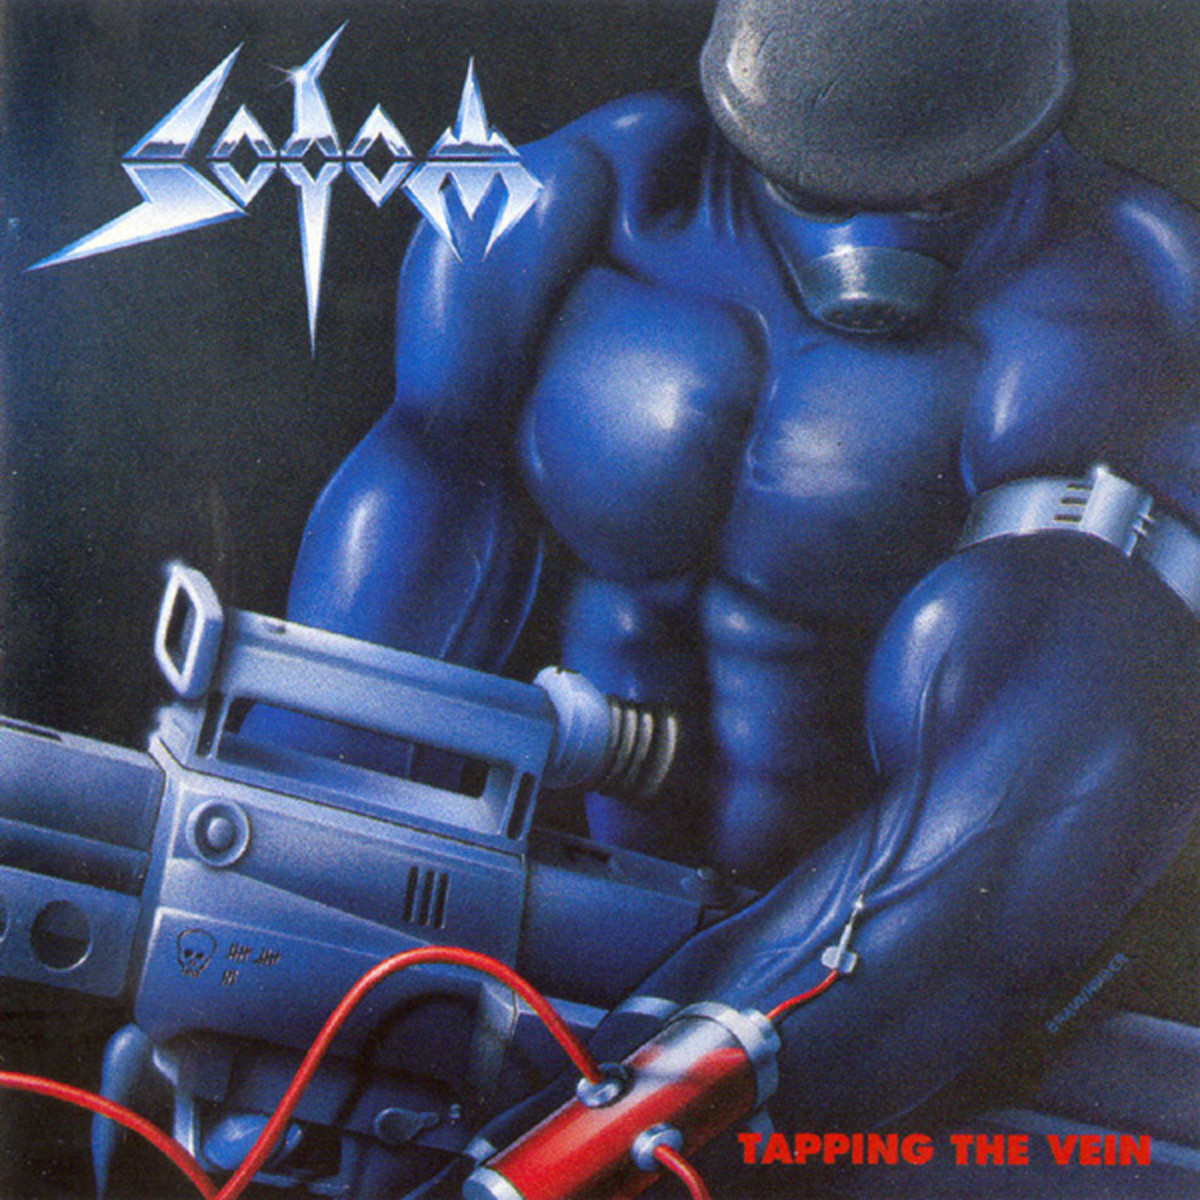 review-of-the-album-tapping-the-vein-by-germanys-sodom